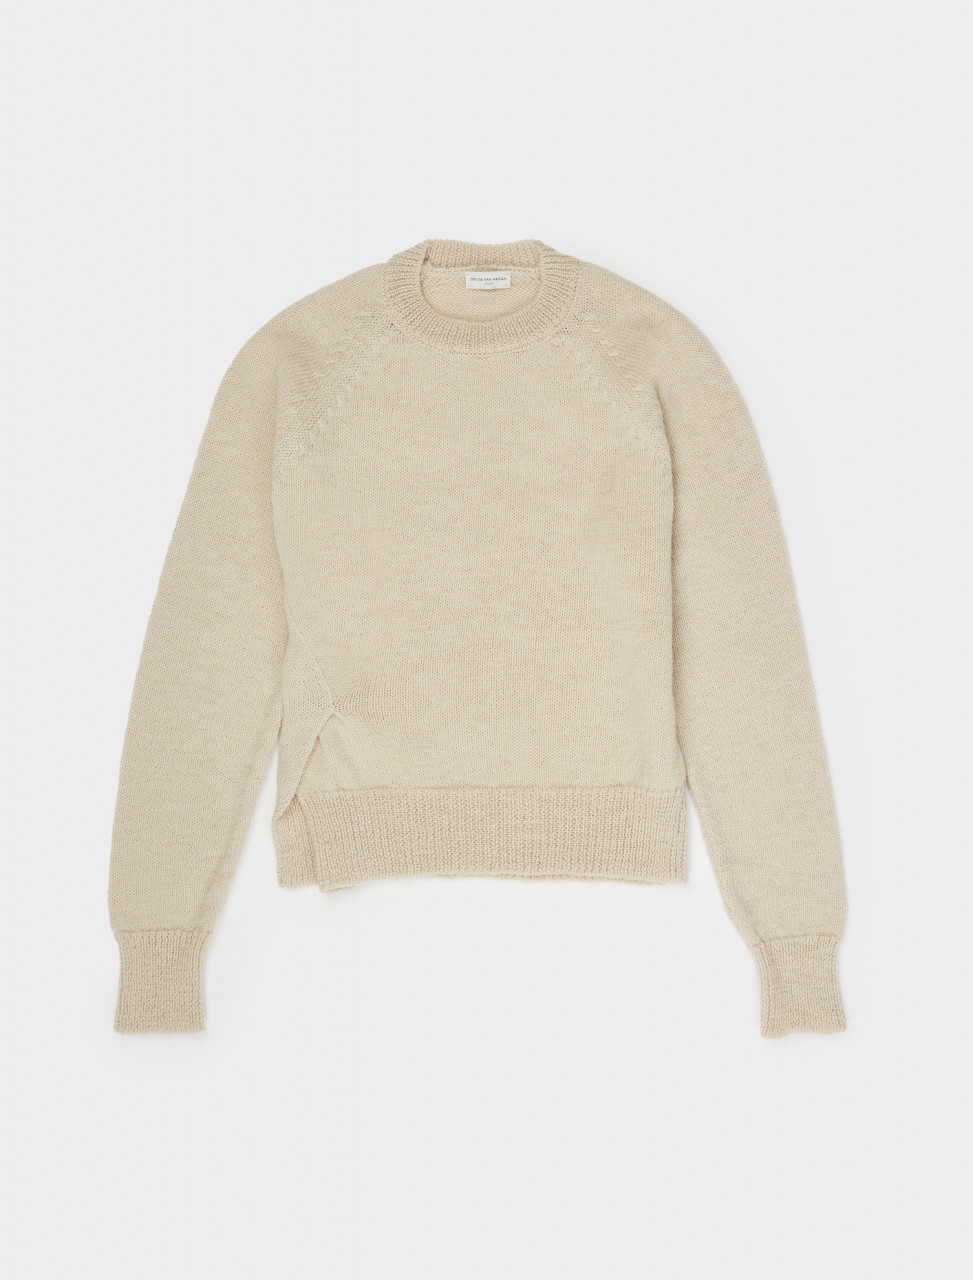 260-202-21242-1703-004 DRIES VAN NOTEN MASAI KNIT NATURAL